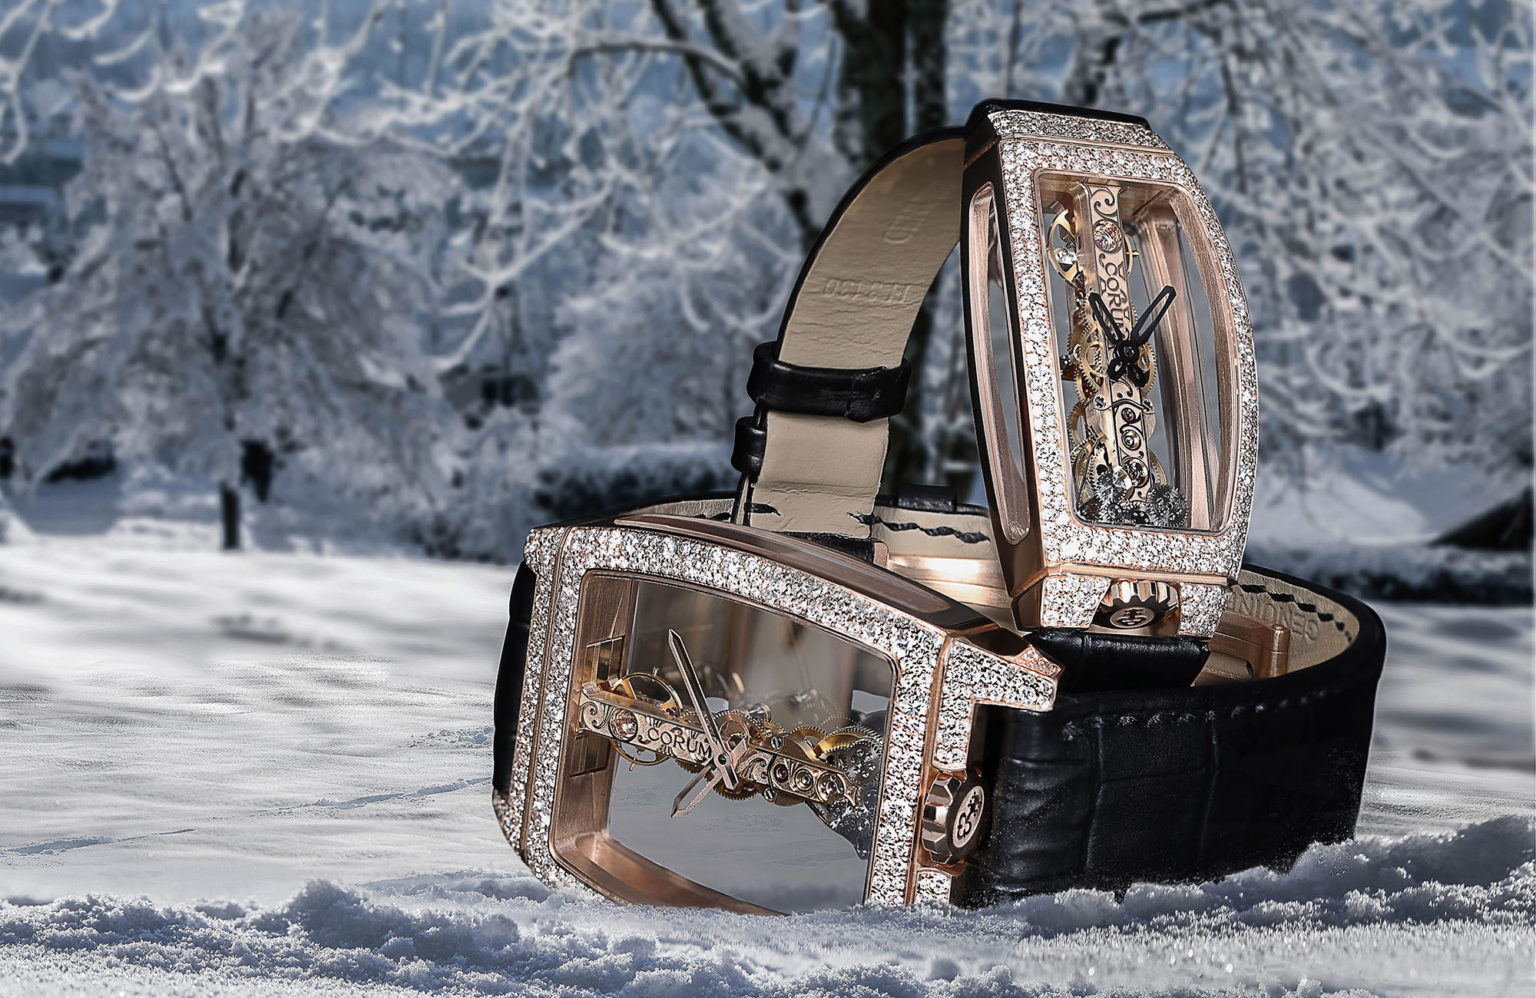 For Christmas, Corum covers its Golden Bridges in snow